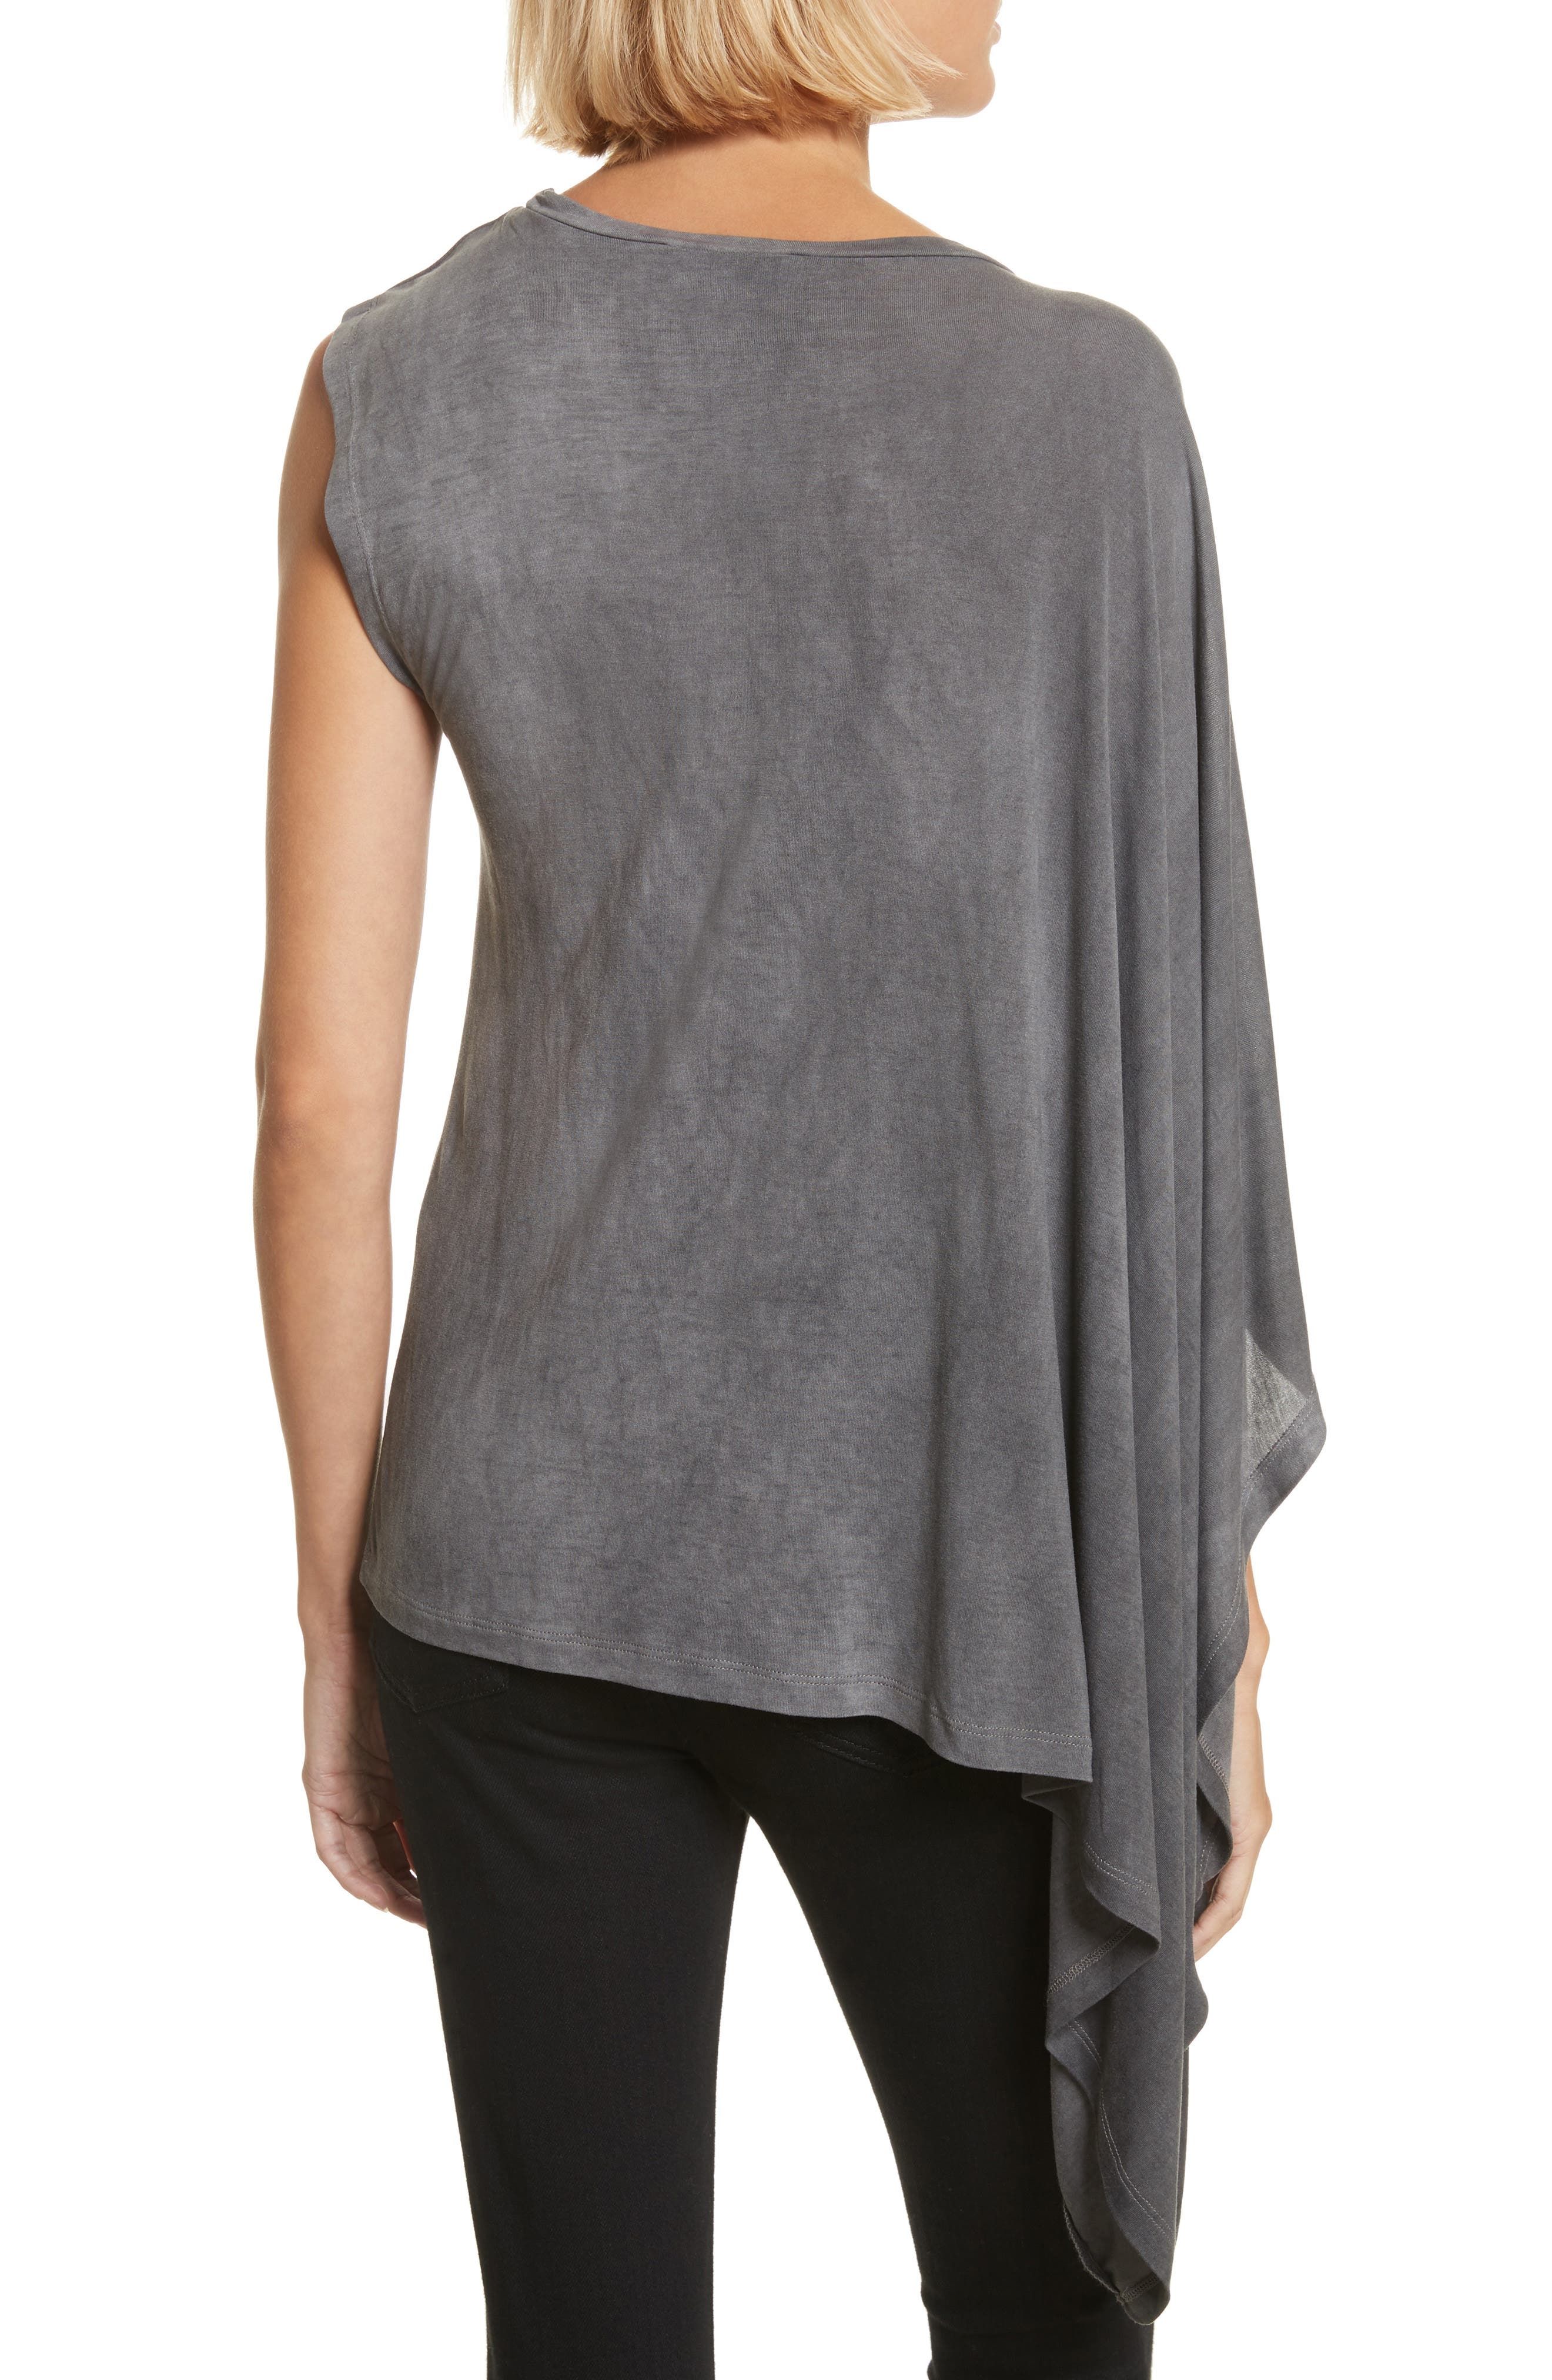 Eloaz Asymmetrical Draped Top,                             Alternate thumbnail 2, color,                             Charcoal